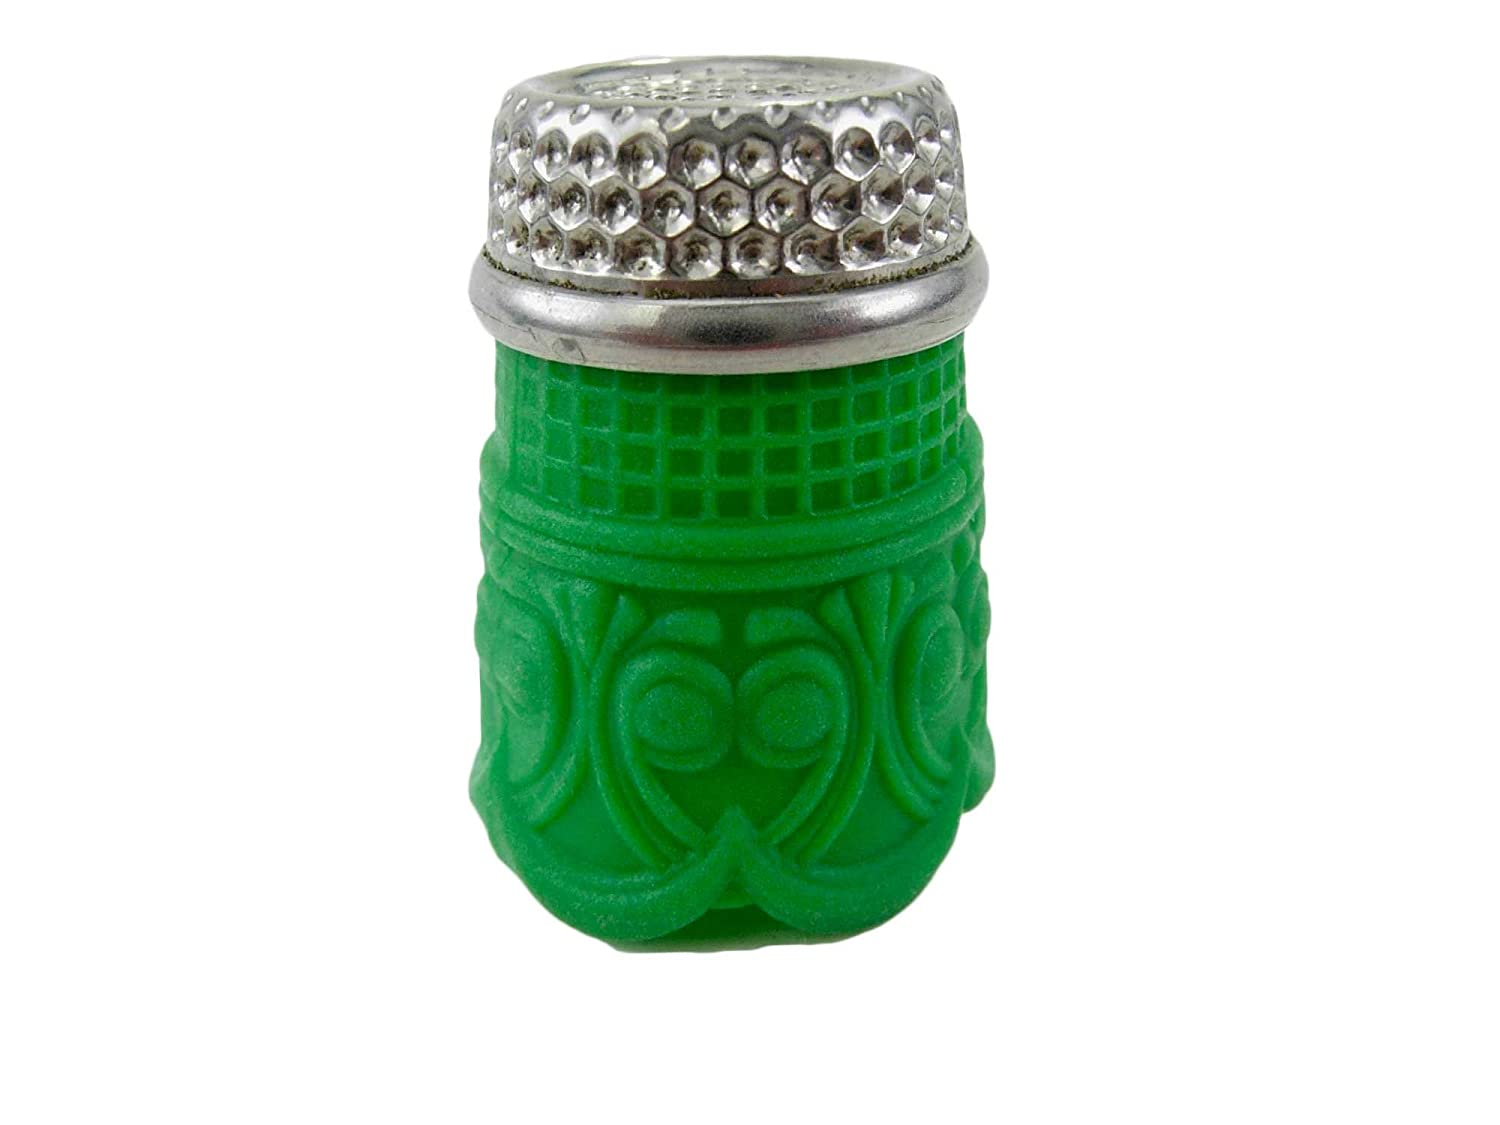 Rhythm Patch Flexible Silicone Rubber Grip Brass Thimble, Recessed-TopQuilter, Round Collar, 15.5 mm (Medium, Green) Proprietary